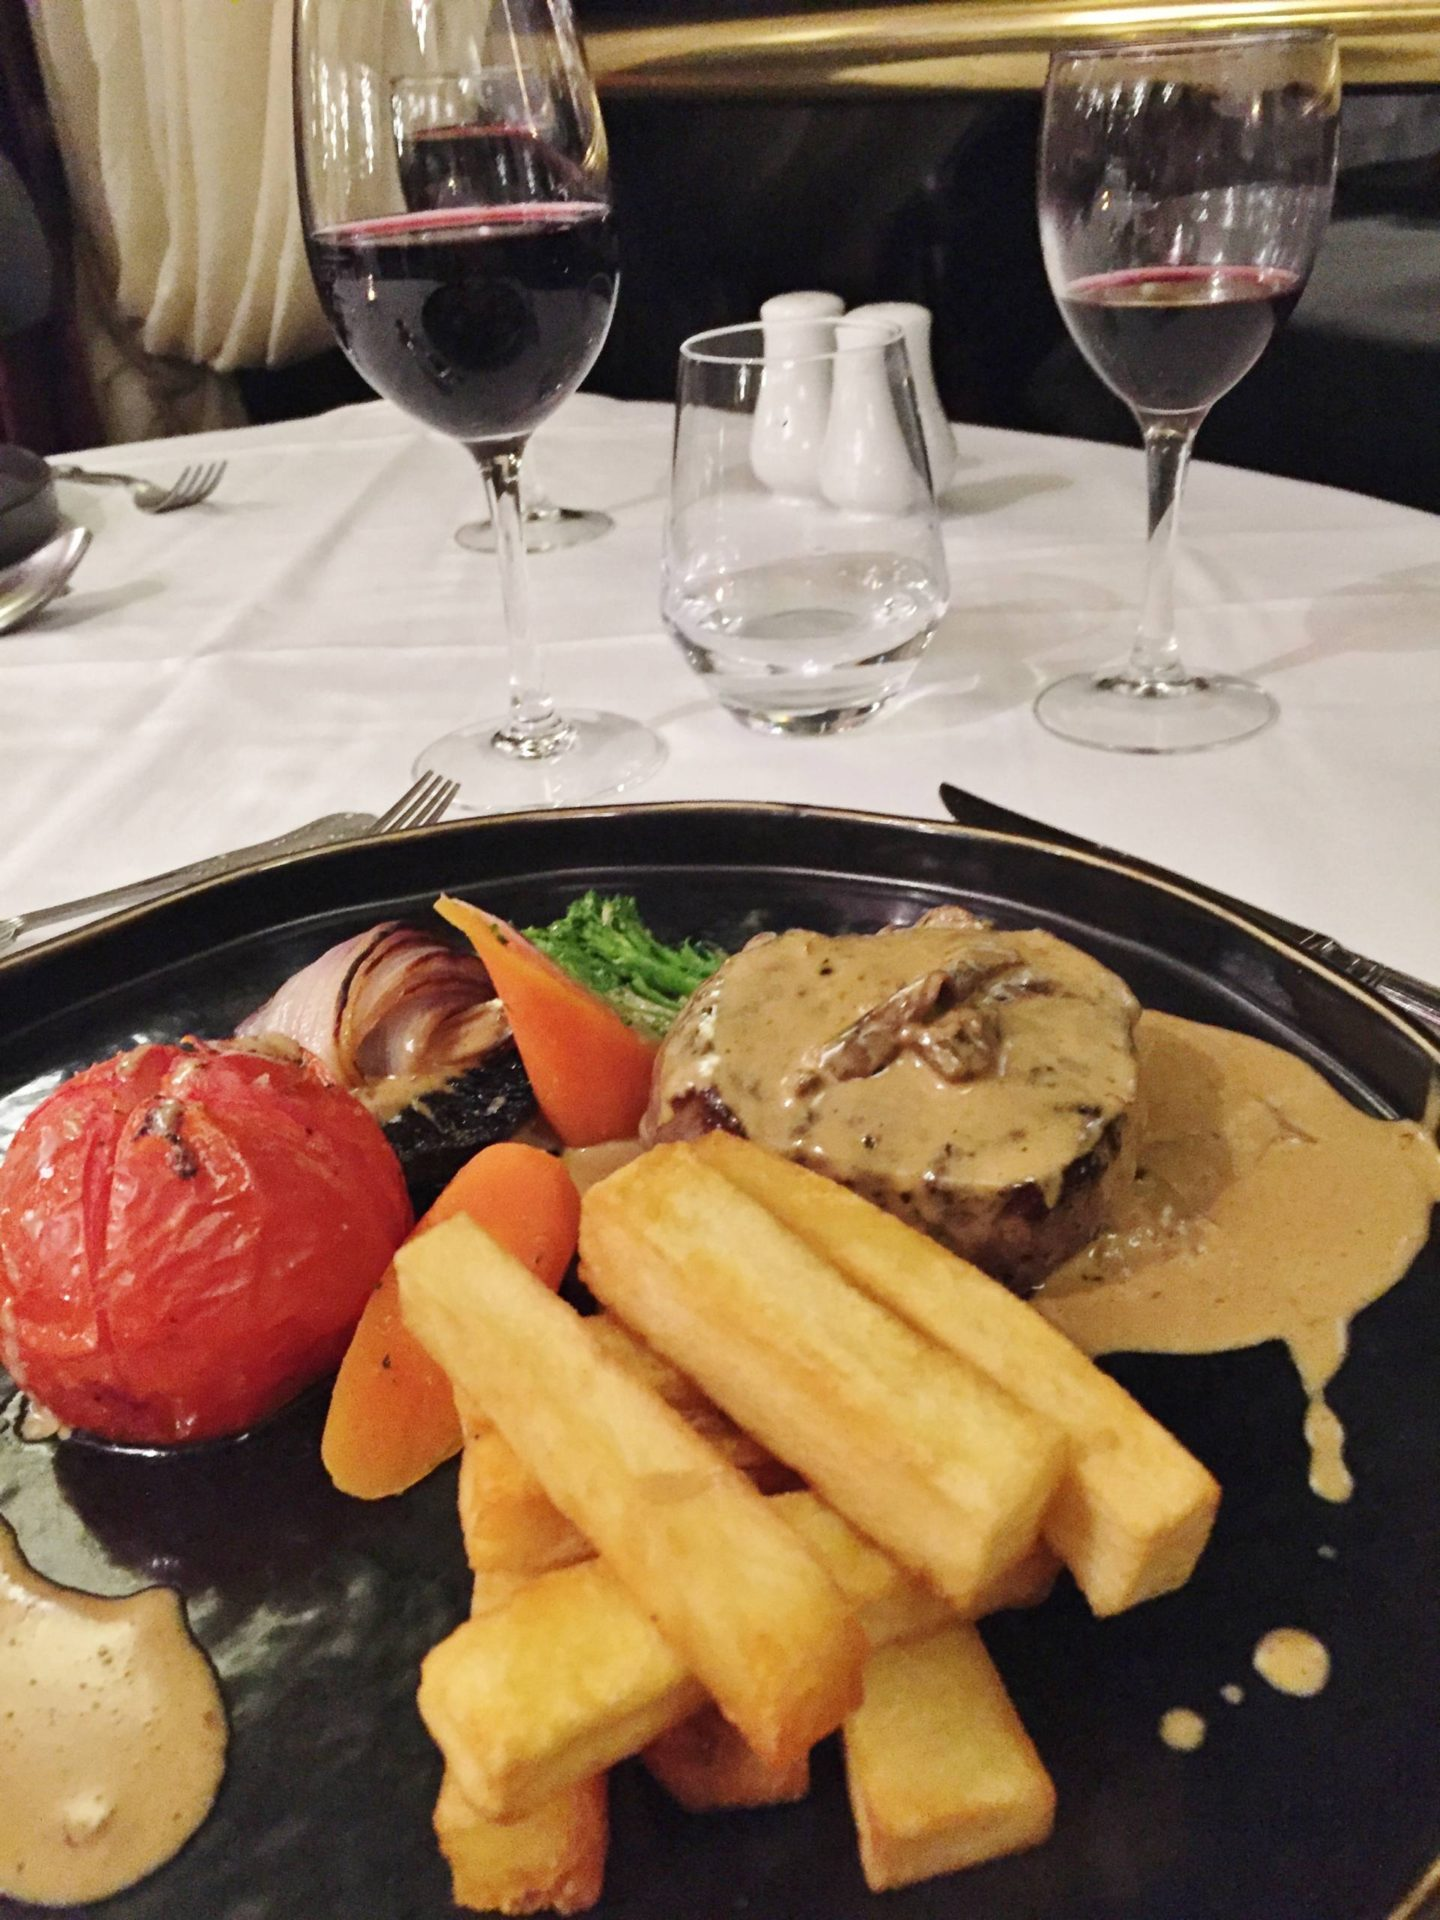 Emma Victoria Stokes Beech Hill Hotel And Spa Lakeview Windermere Fell Bred Steak